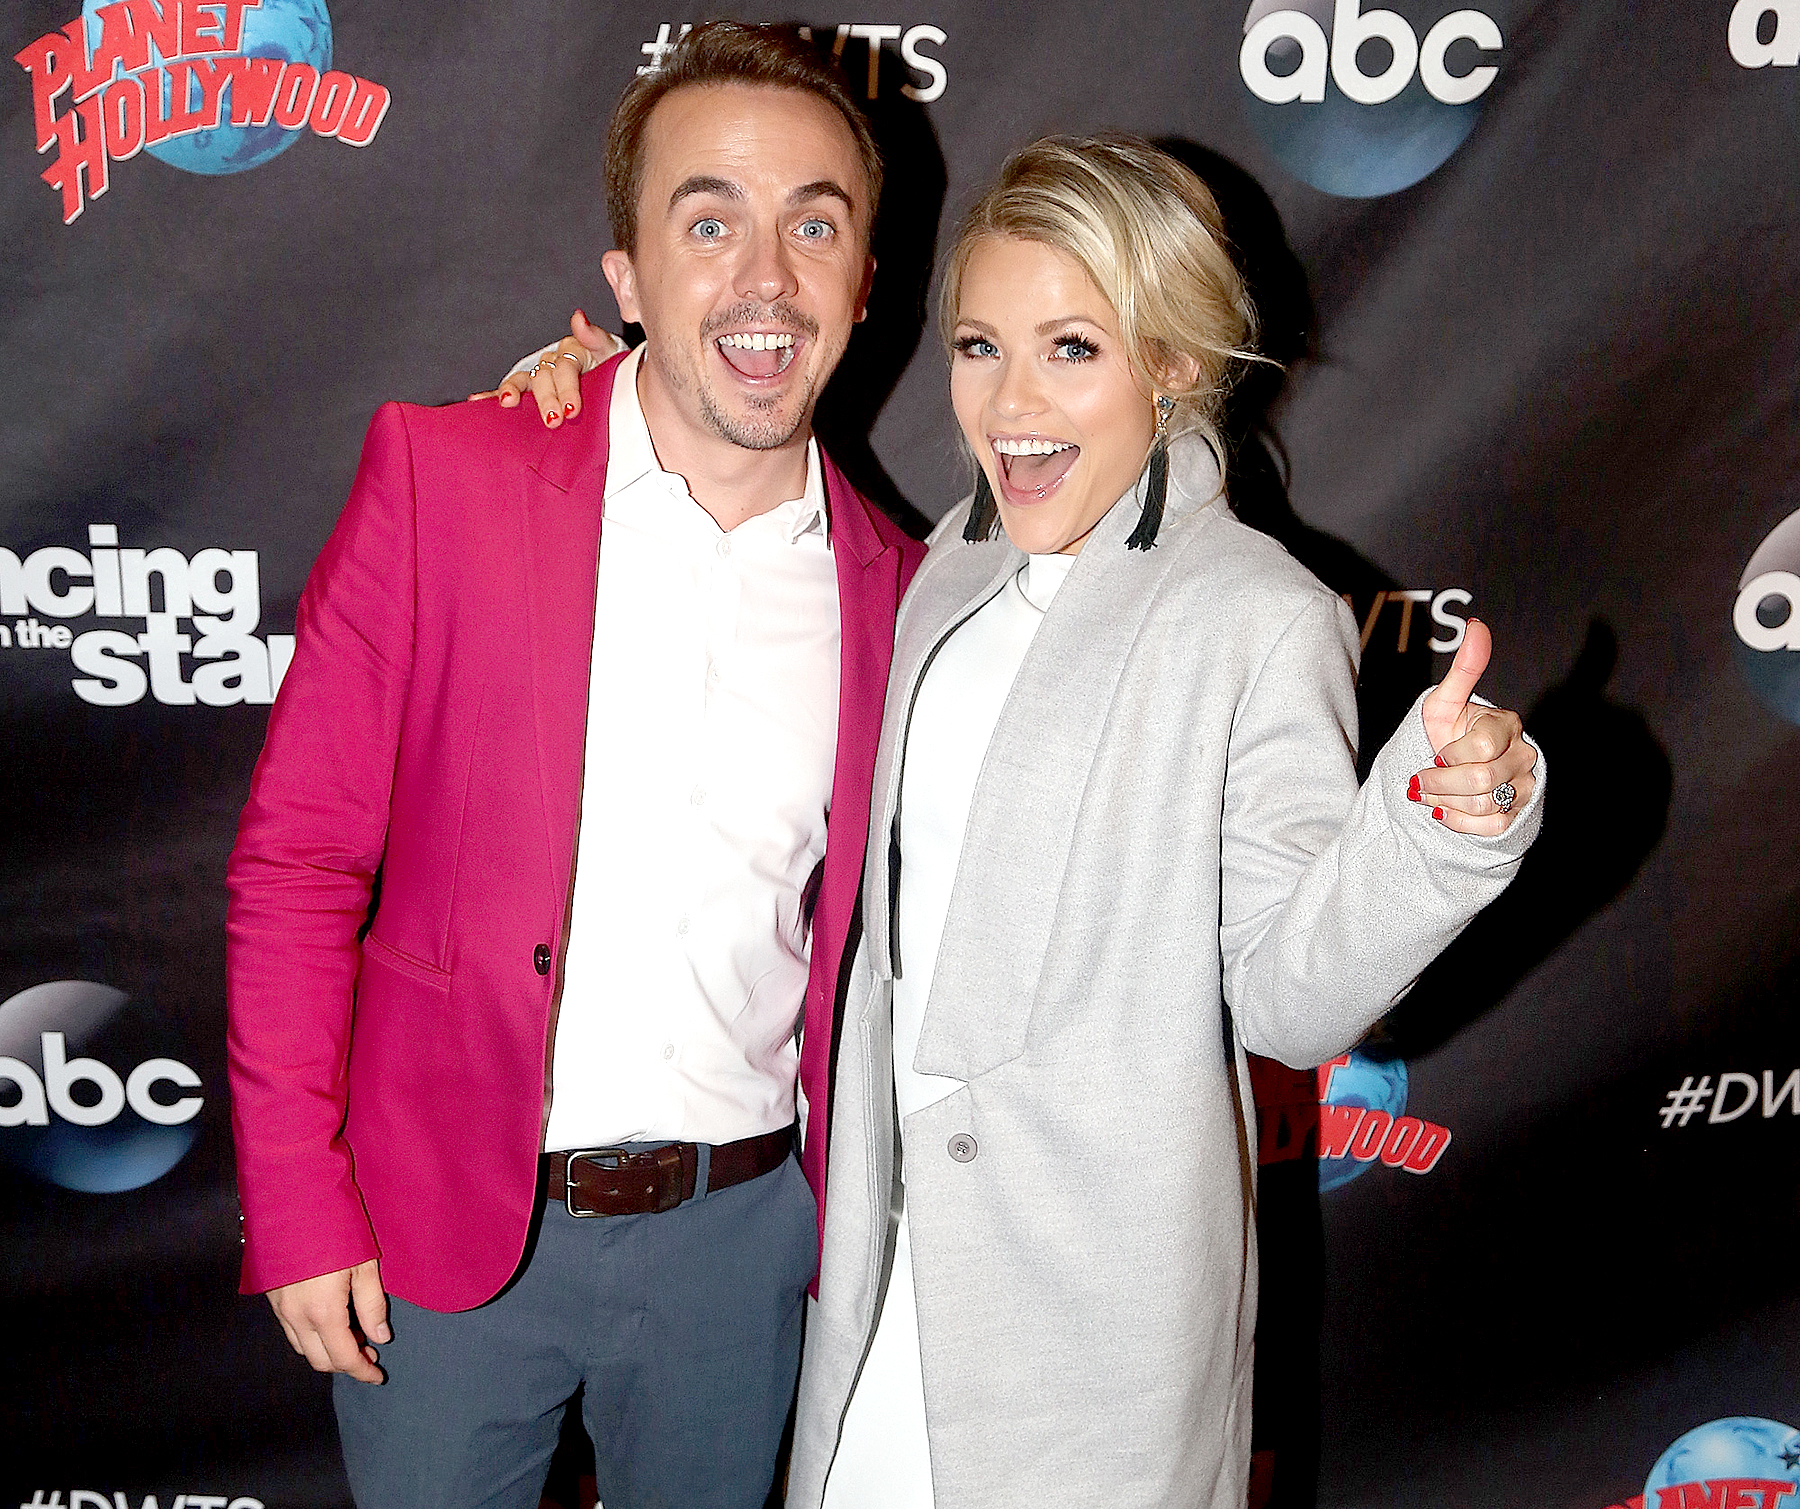 Frankie Muniz and Witney Carson pose at ABC's 'Dancing With the Stars' season 25 cast announcement event at Planet Hollywood Times Square in New York City on September 6, 2017.